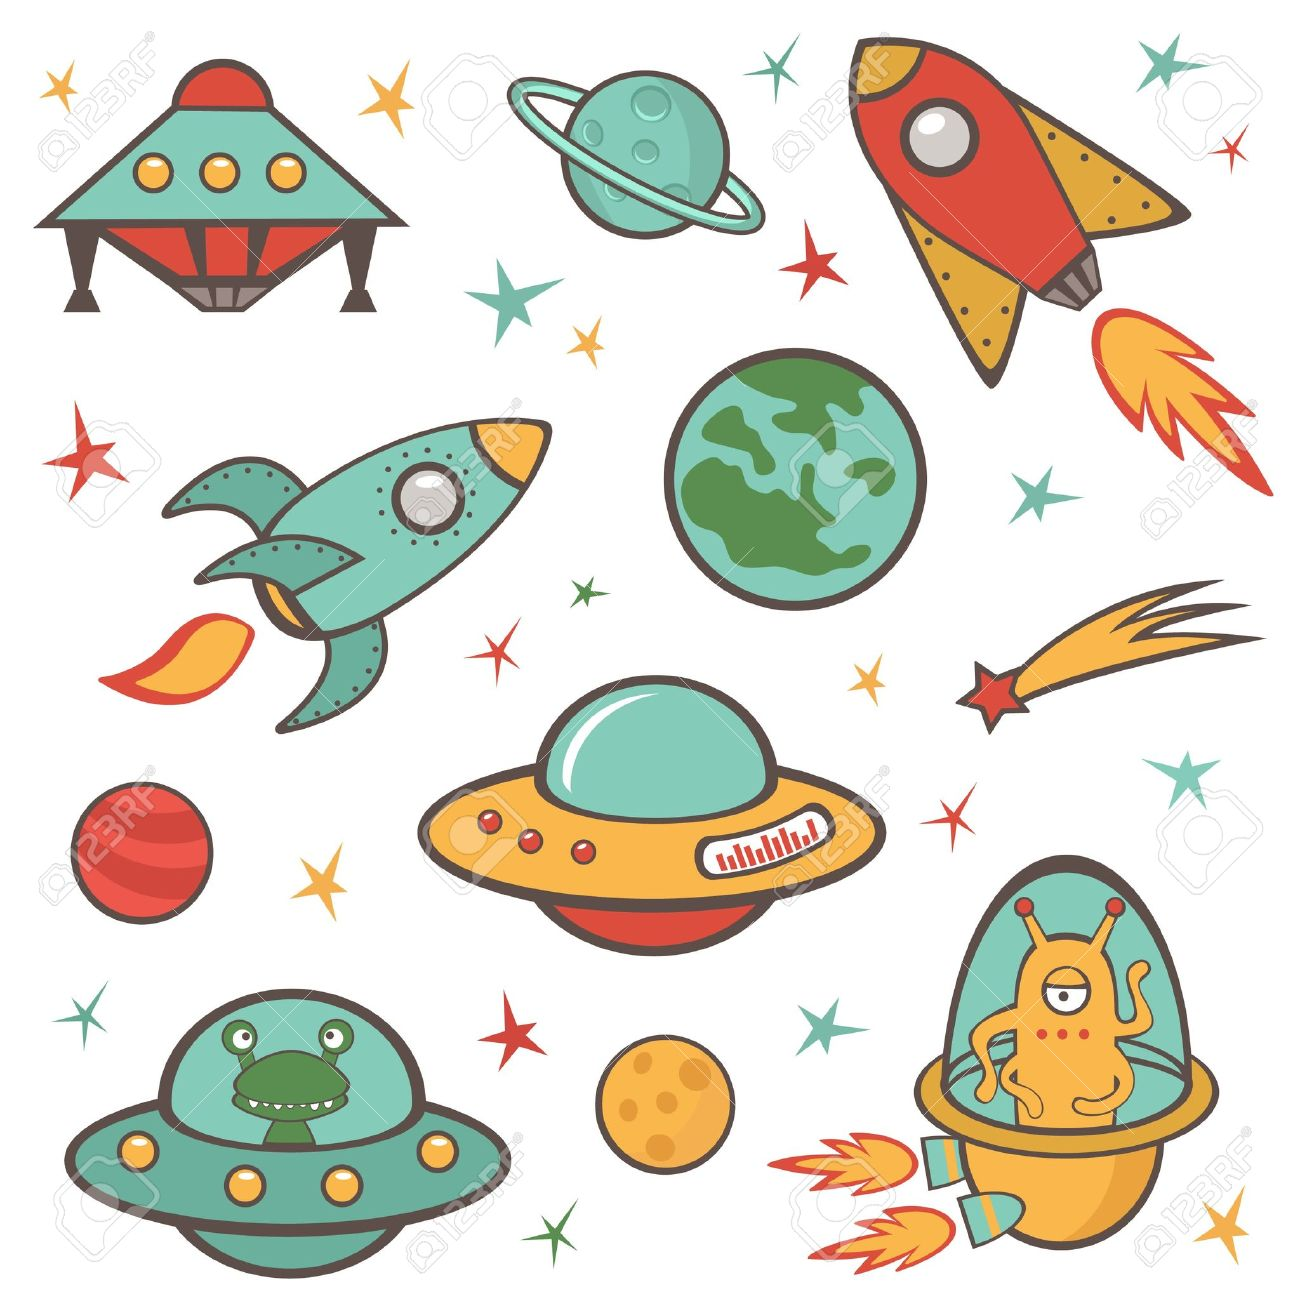 colorful outer space stickers collection royalty free cliparts rh 123rf com outer space clipart border outer space clipart black and white